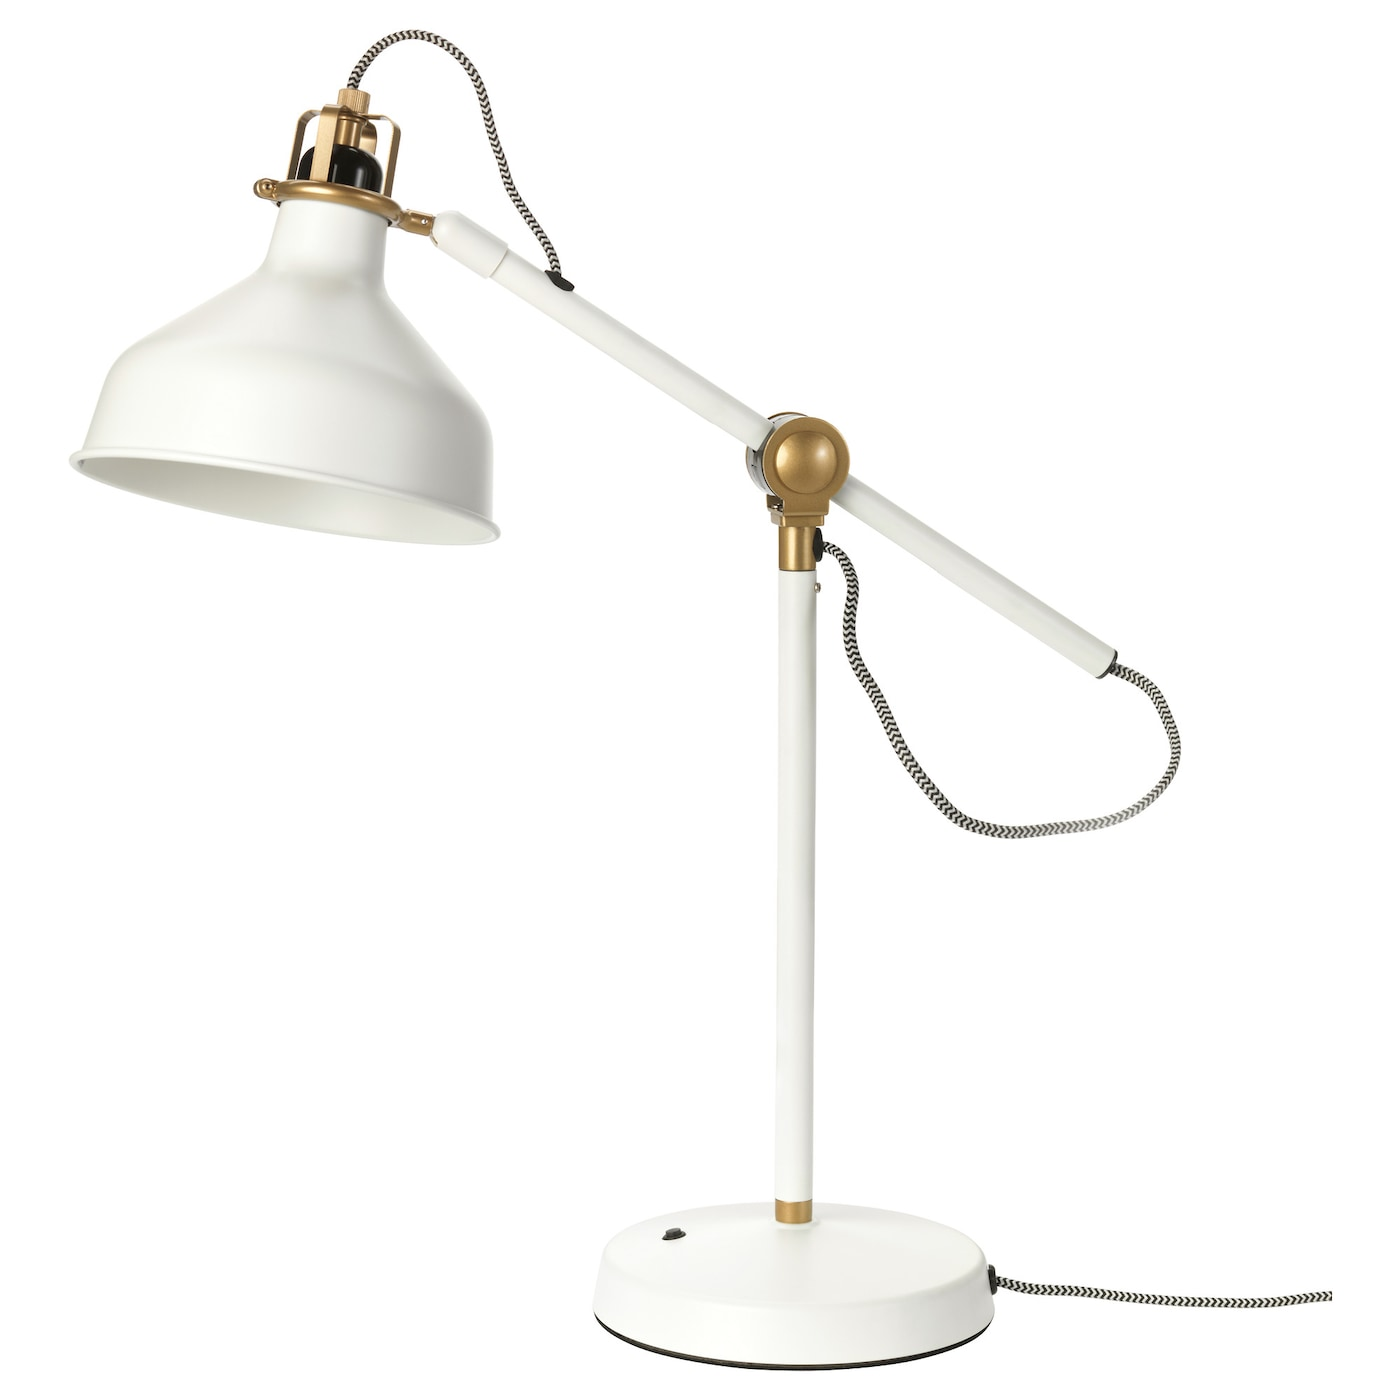 Lighting lamps led lighting lamps ikea ikea ranarp work lamp provides a directed light that is great for reading geotapseo Images